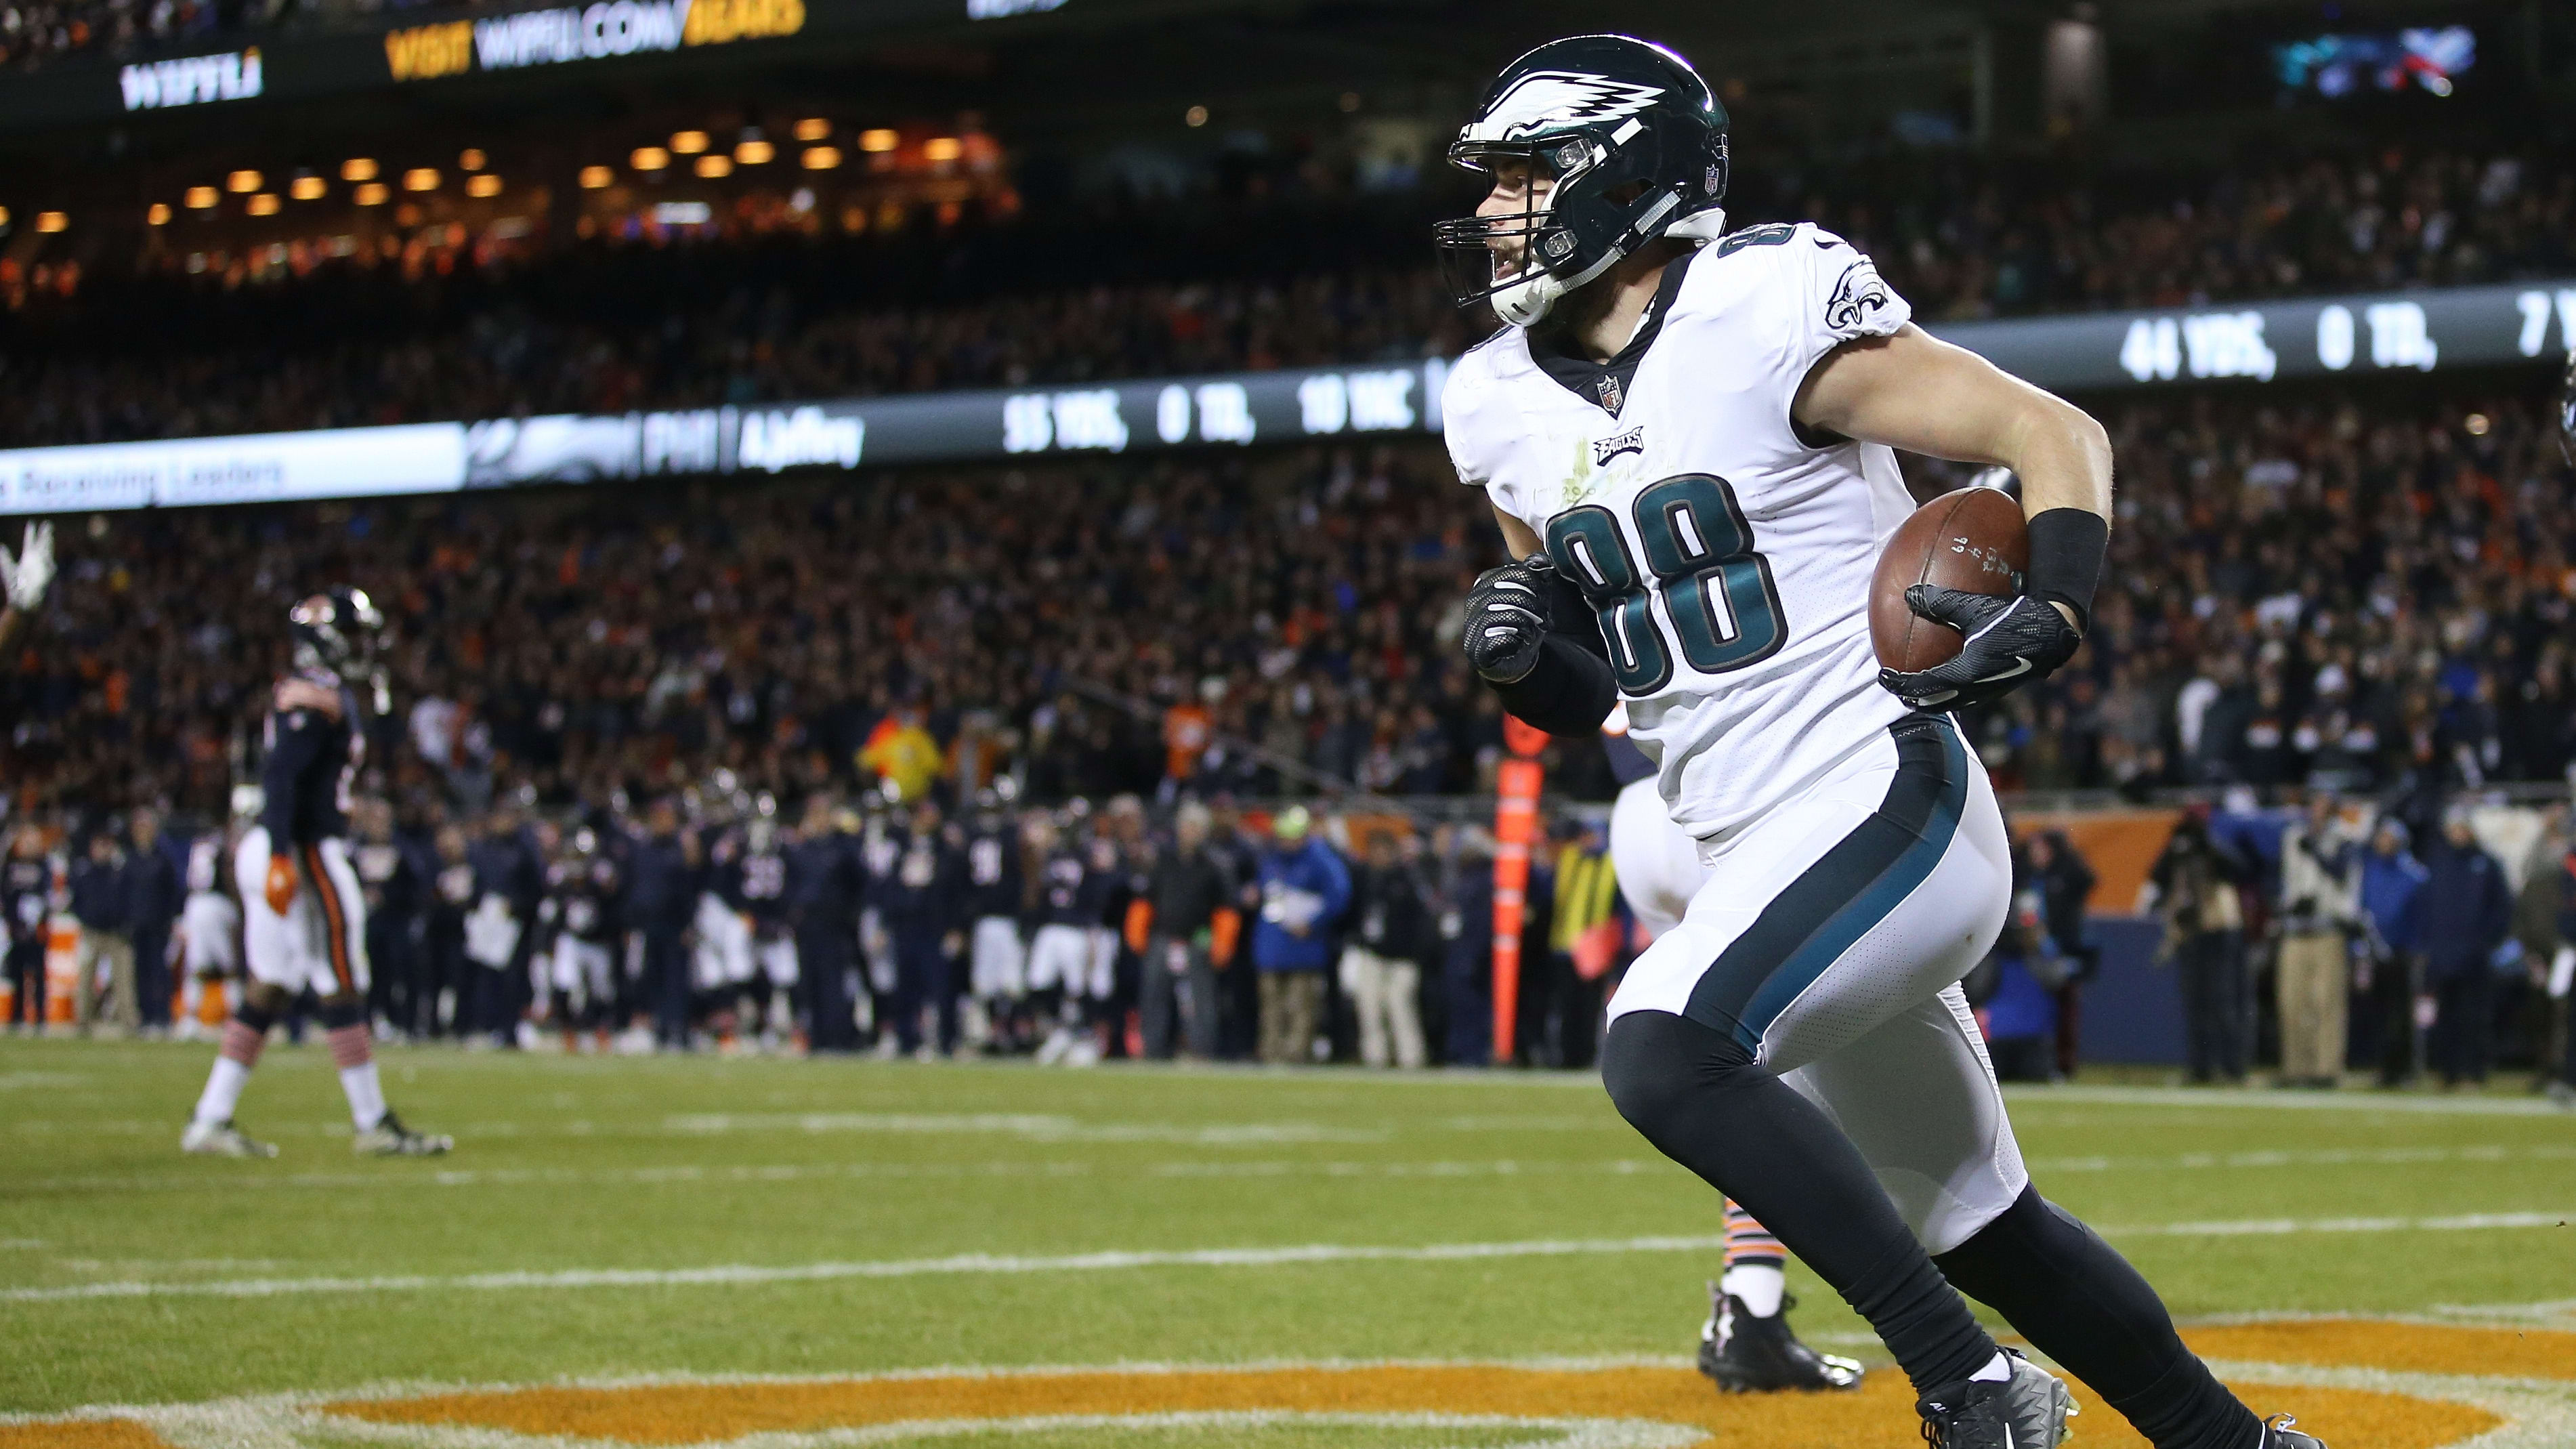 CHICAGO, ILLINOIS - JANUARY 06:  Dallas Goedert #88 of the Philadelphia Eagles scores a touchdown against the Chicago Bears in the third quarter of the NFC Wild Card Playoff game at Soldier Field on January 06, 2019 in Chicago, Illinois. (Photo by Dylan Buell/Getty Images)